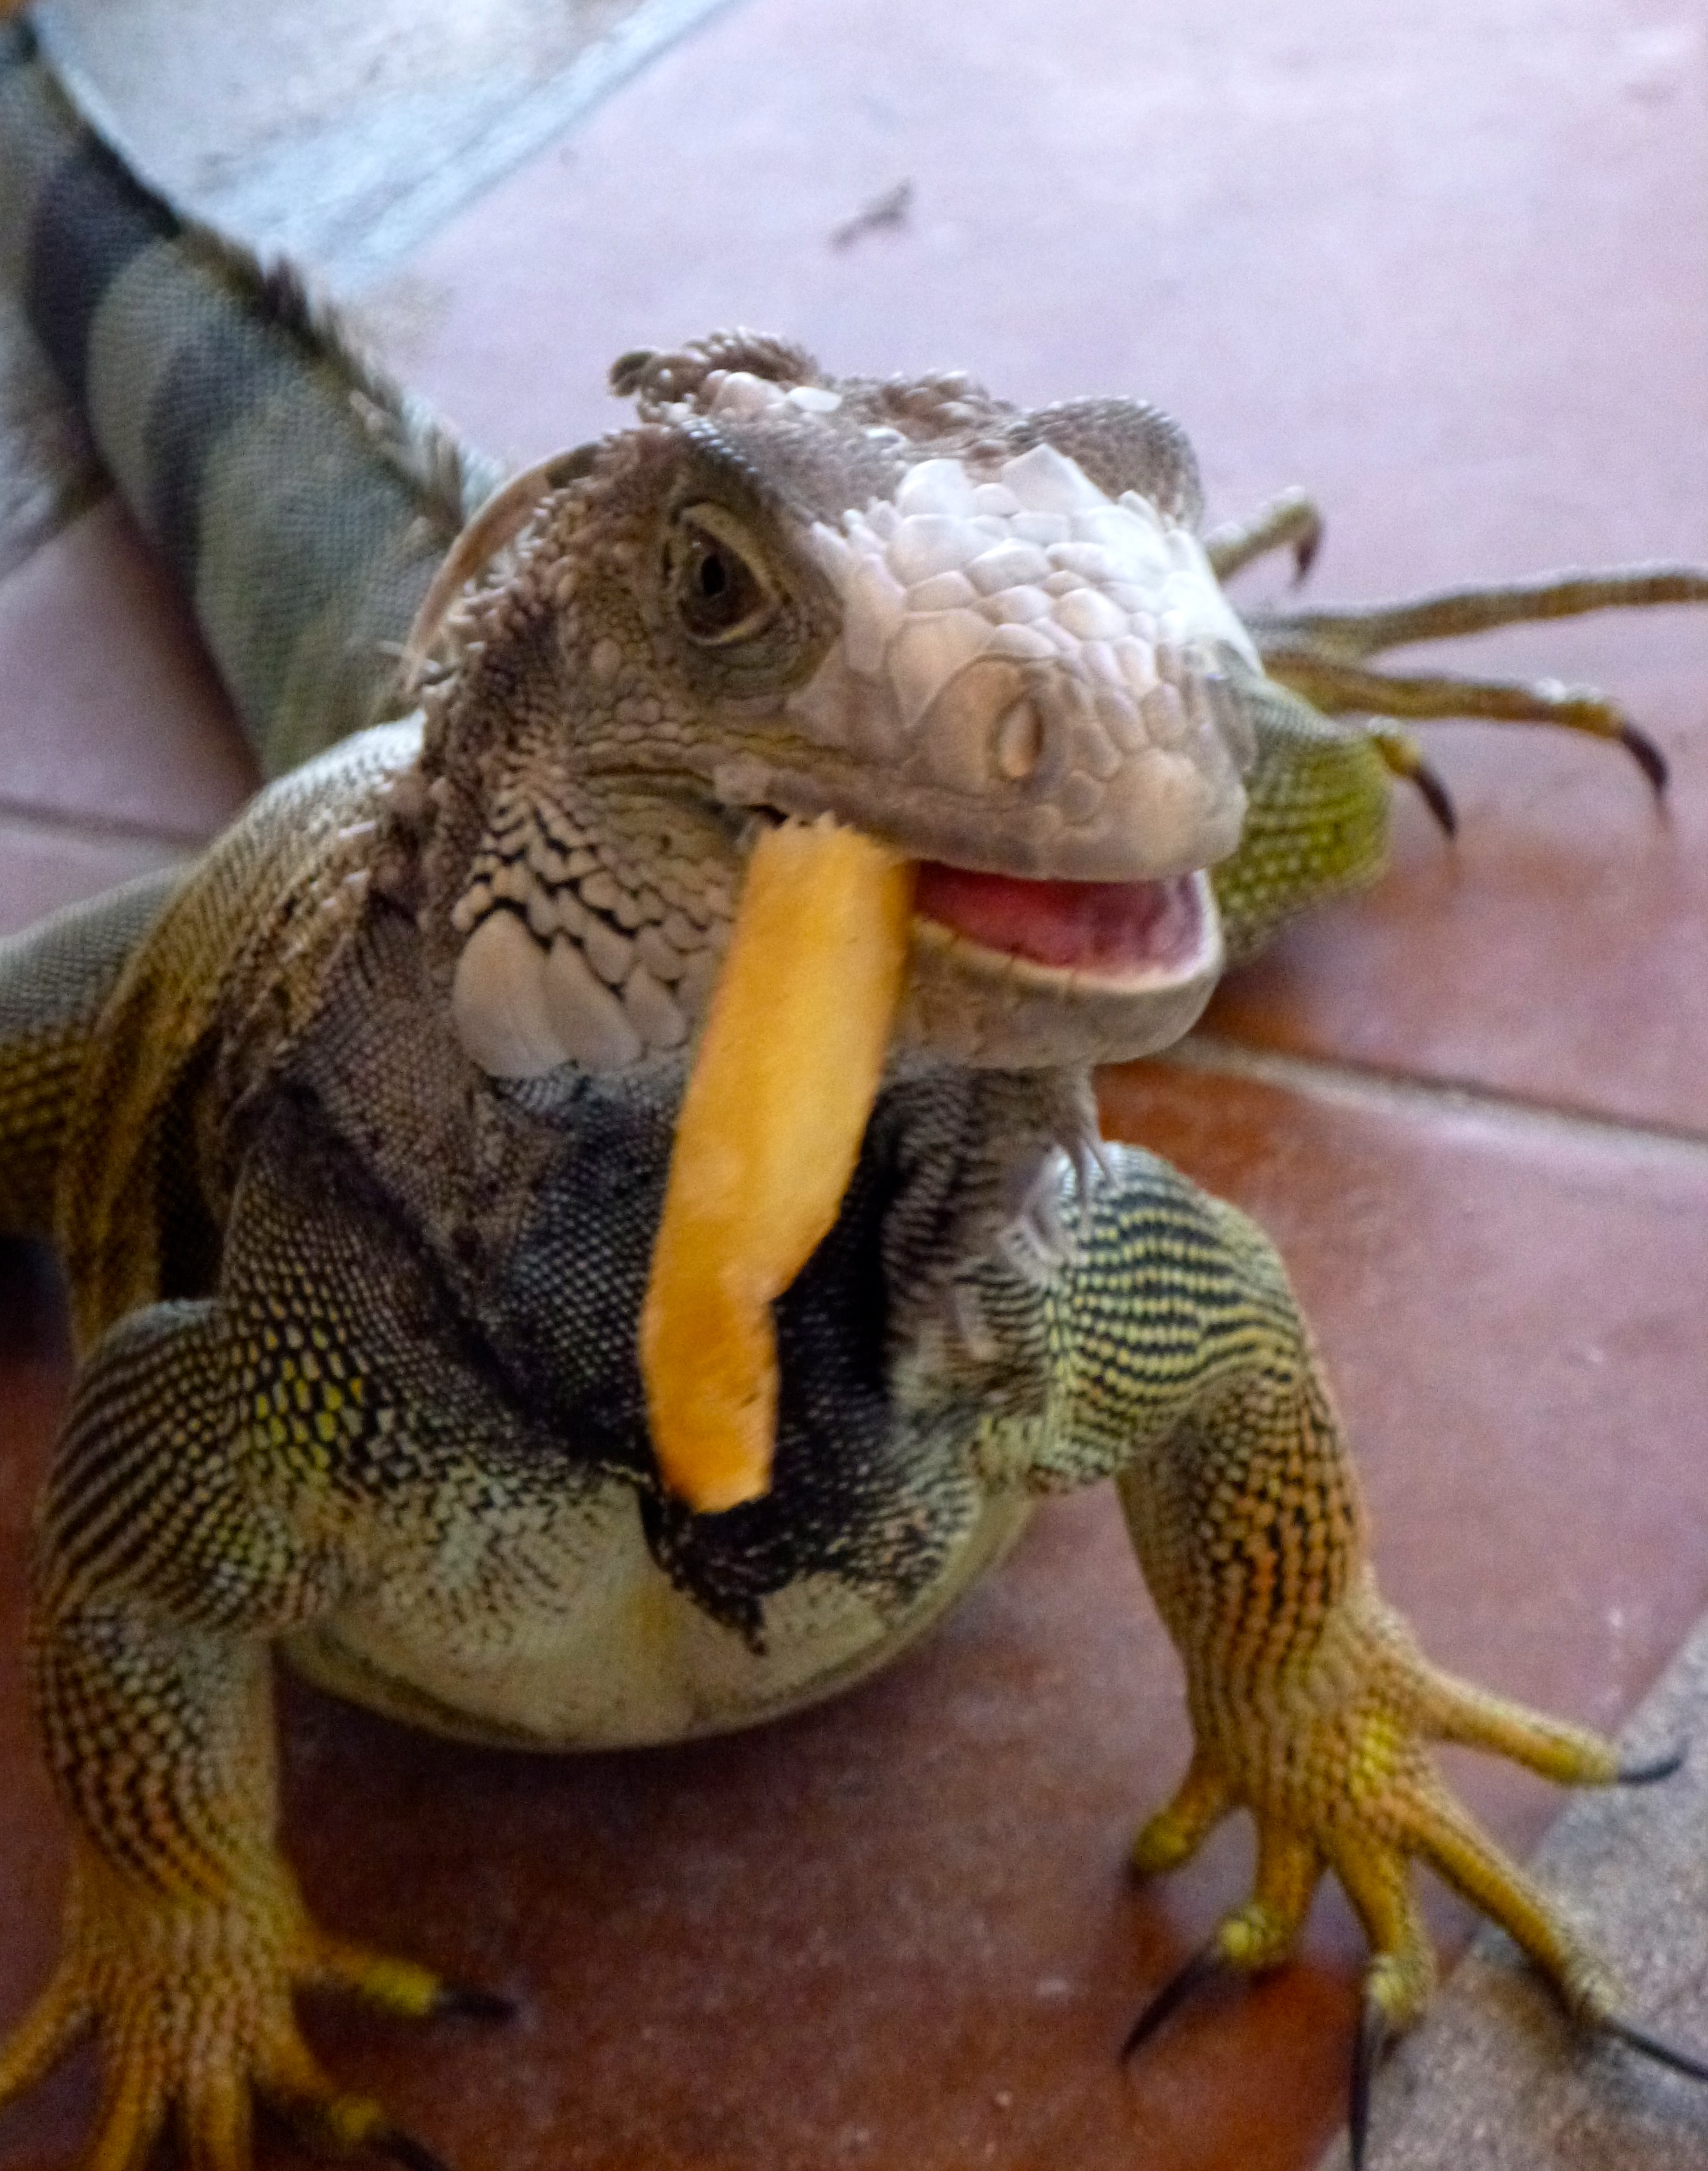 Iguana eating a French fry